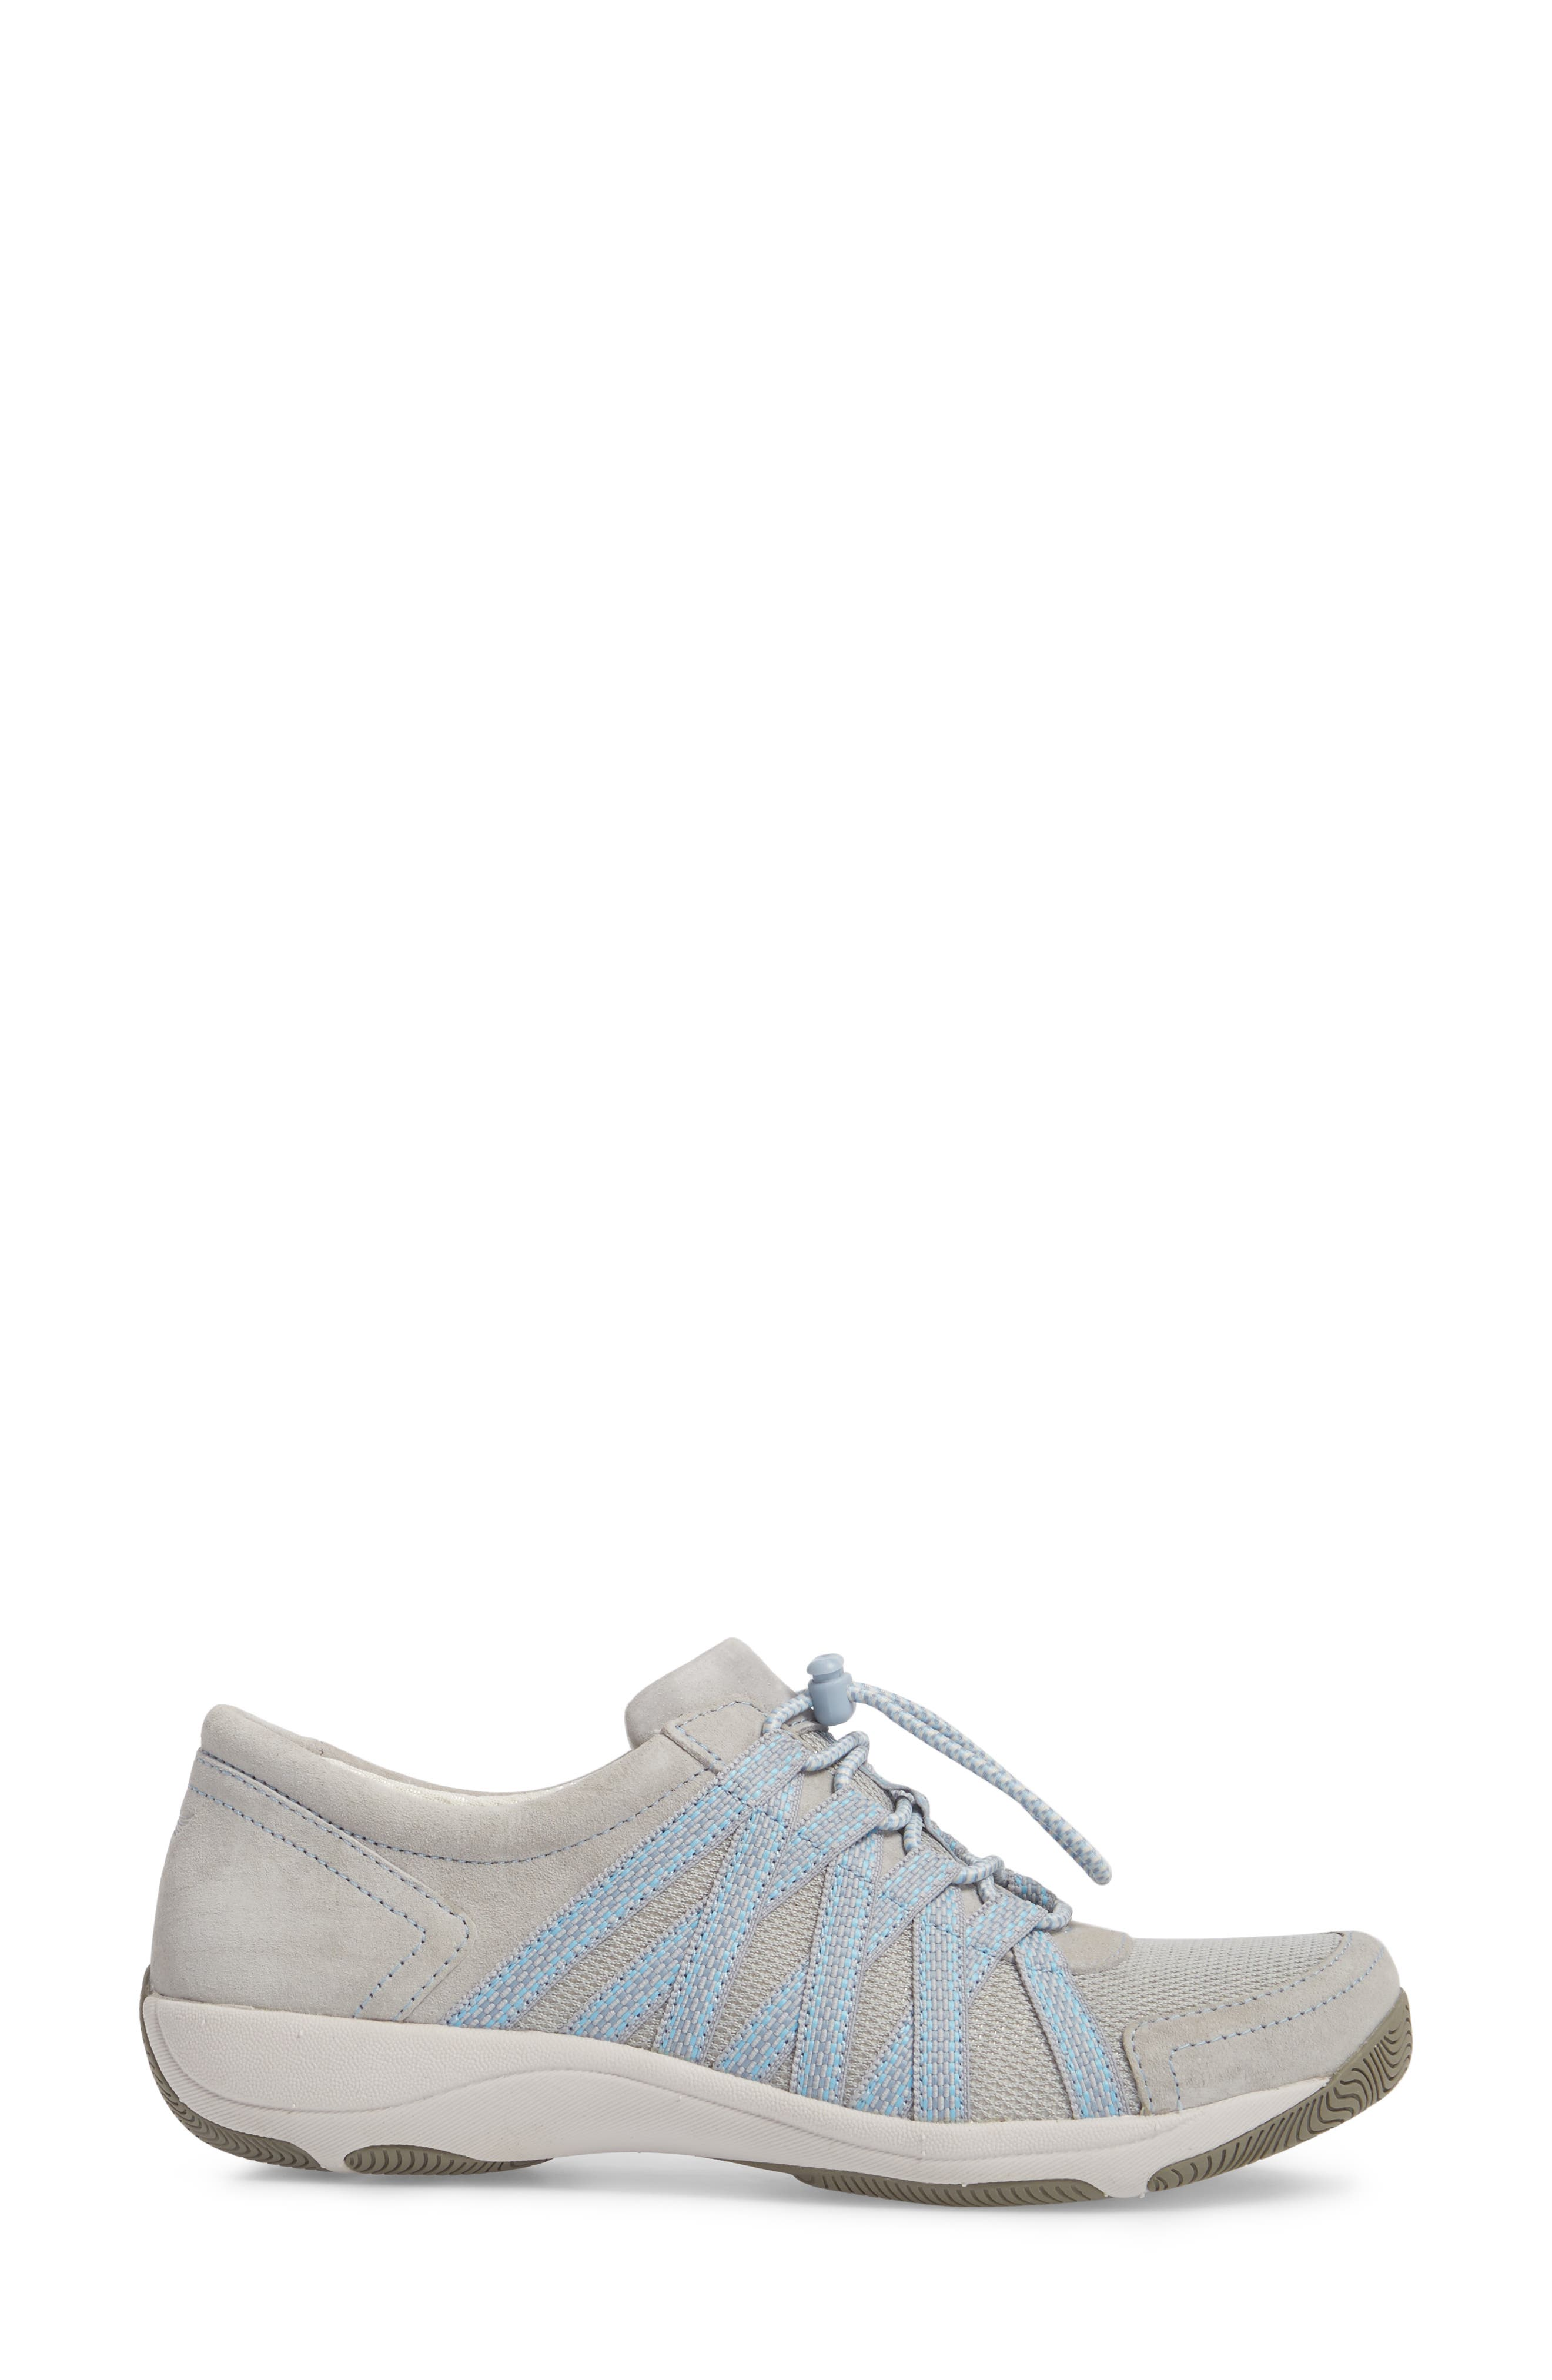 Halifax Collection Honor Sneaker,                             Alternate thumbnail 18, color,